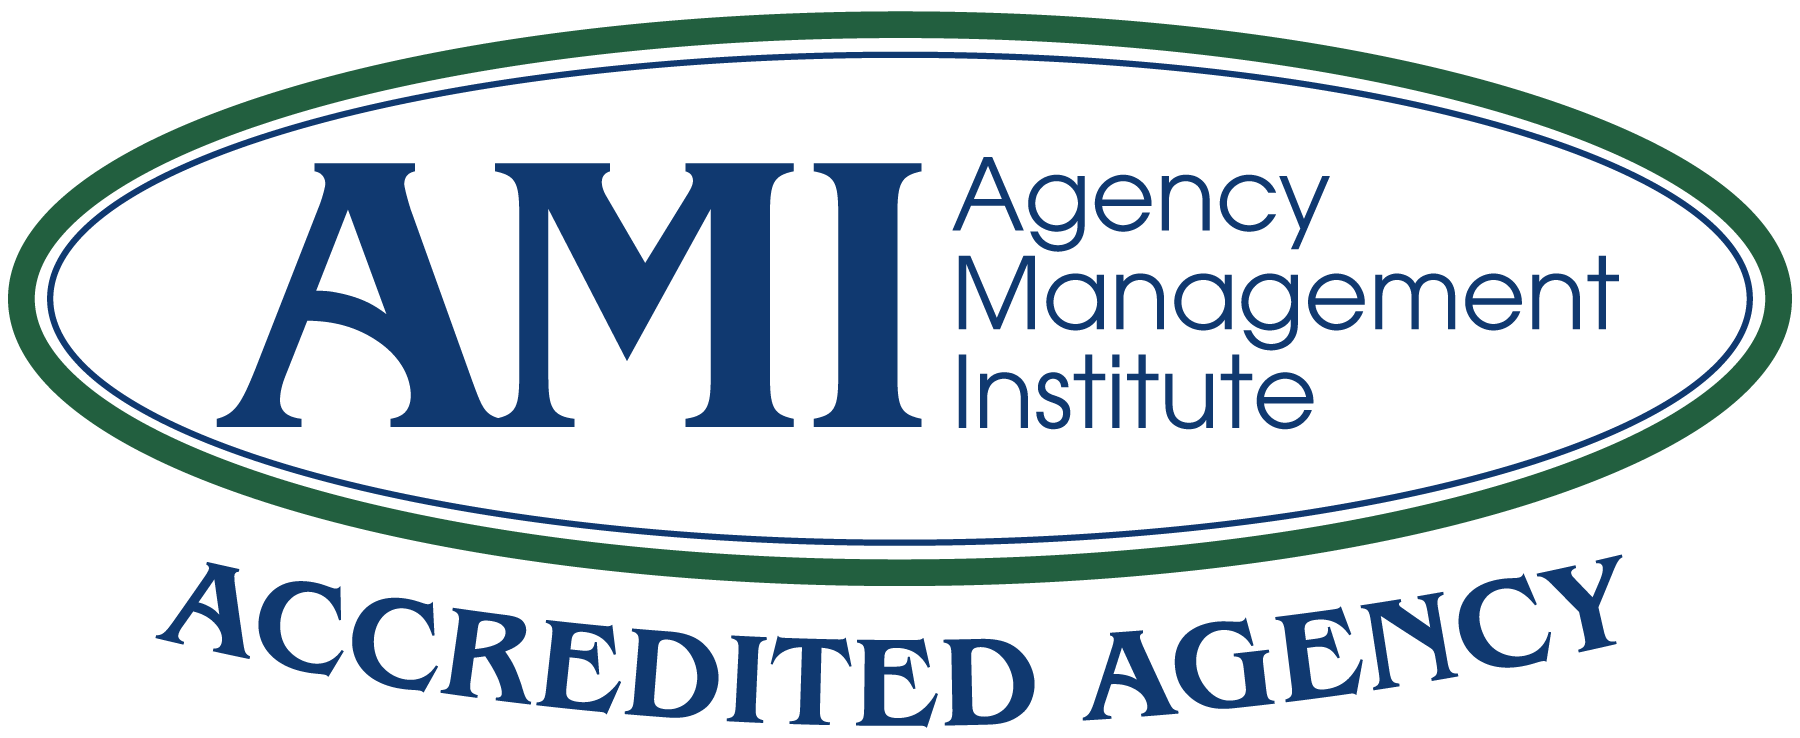 Agency Management Institute - Accredited Agency